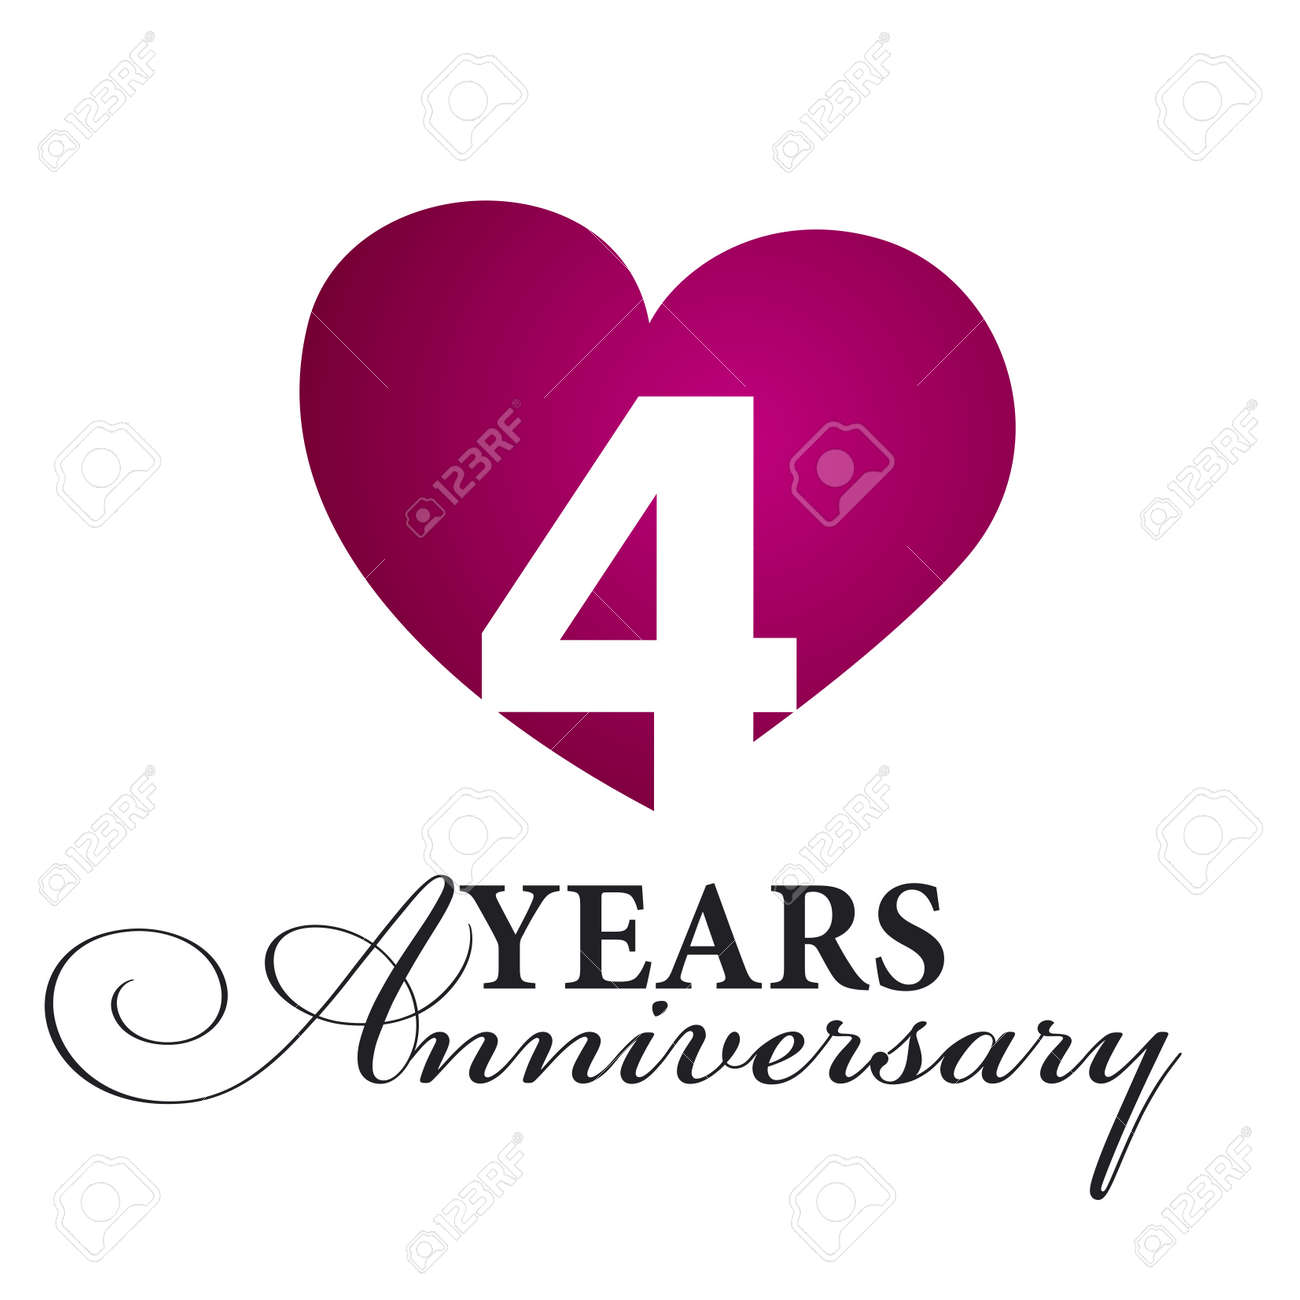 Image result for free image 4 year anniversary